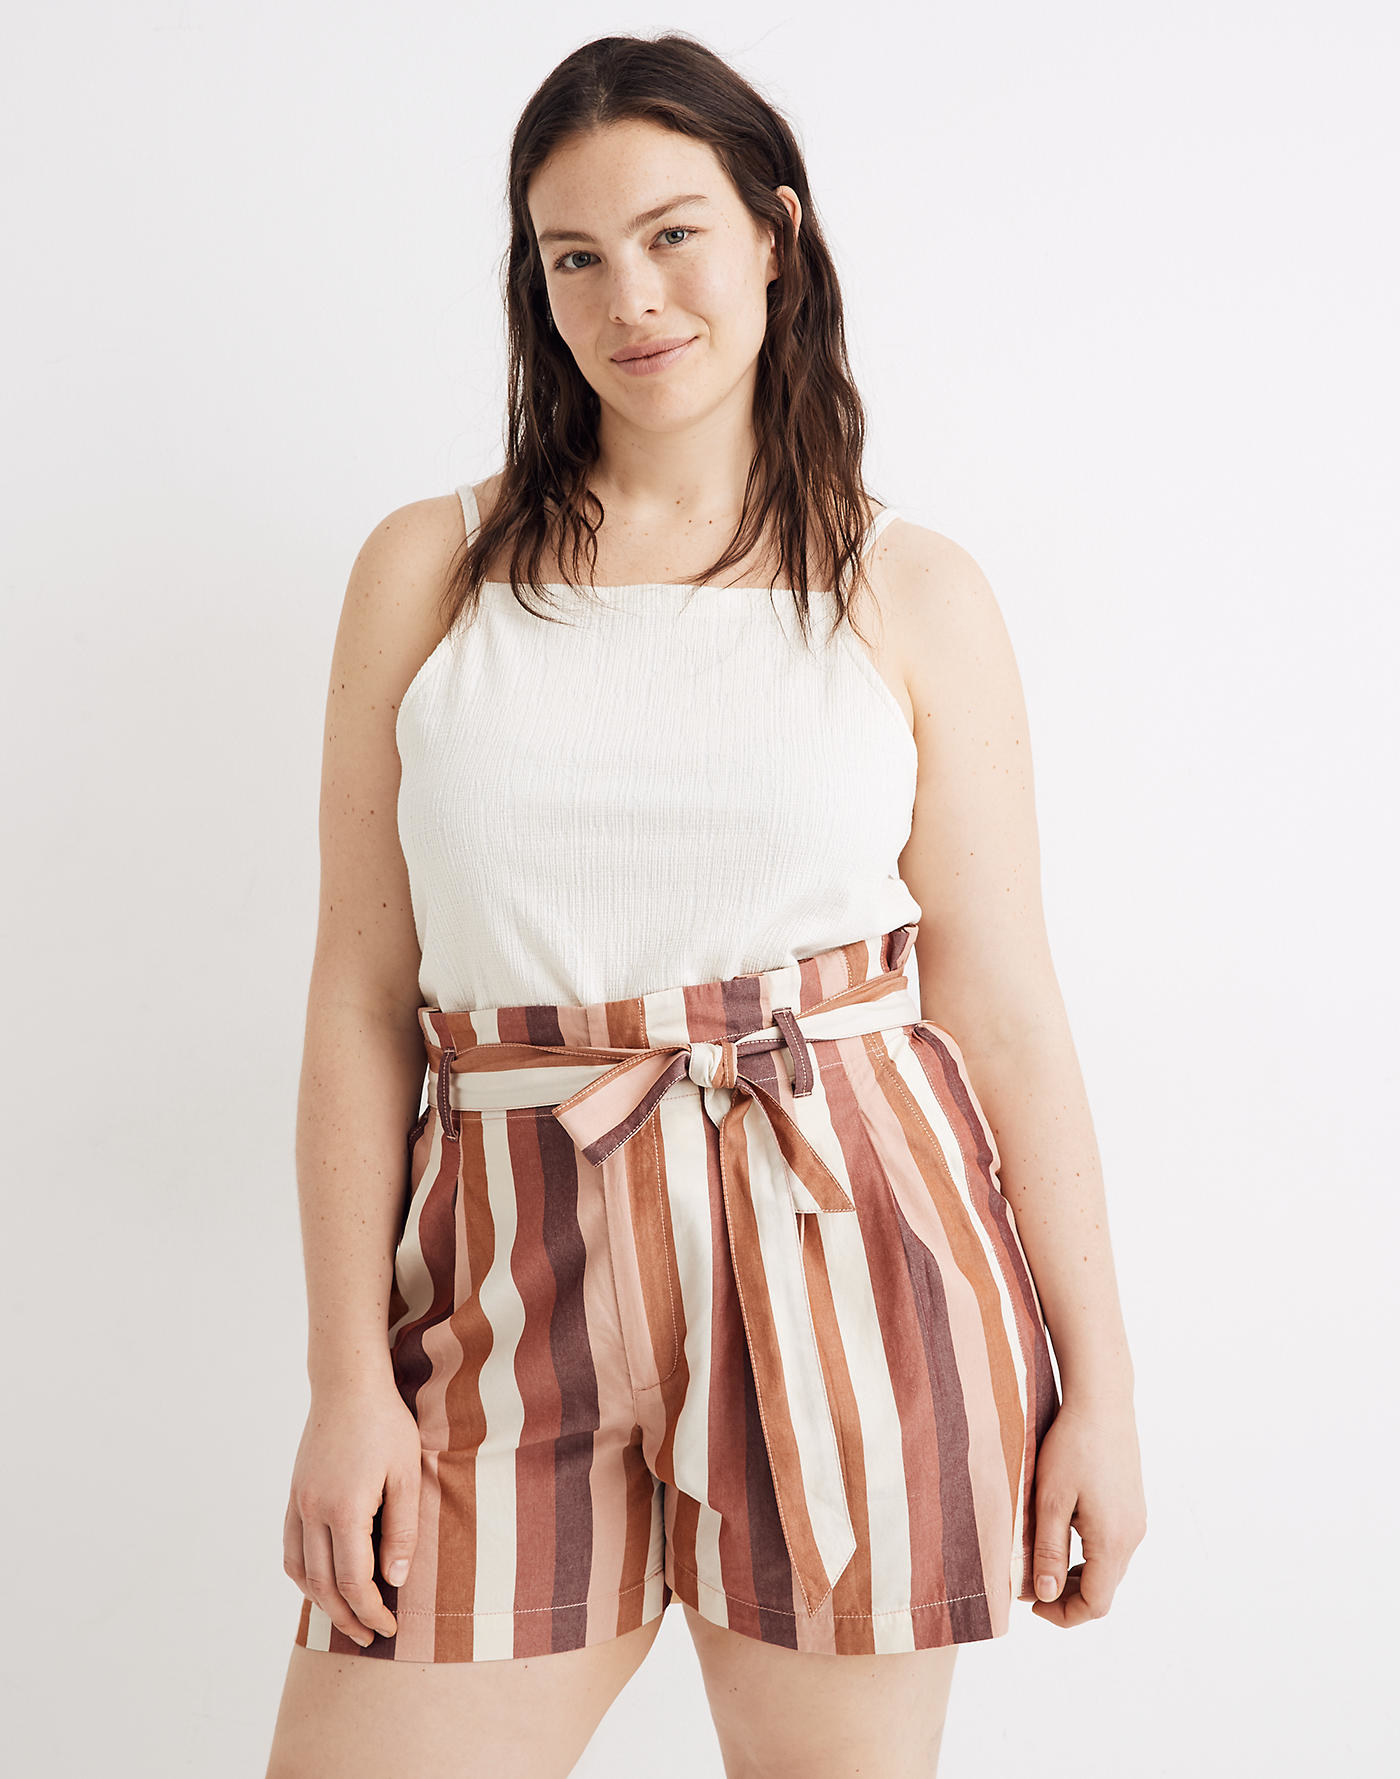 Model wearing the shorts with a tie waist and vertical stripes in white and shakes of pink and orange